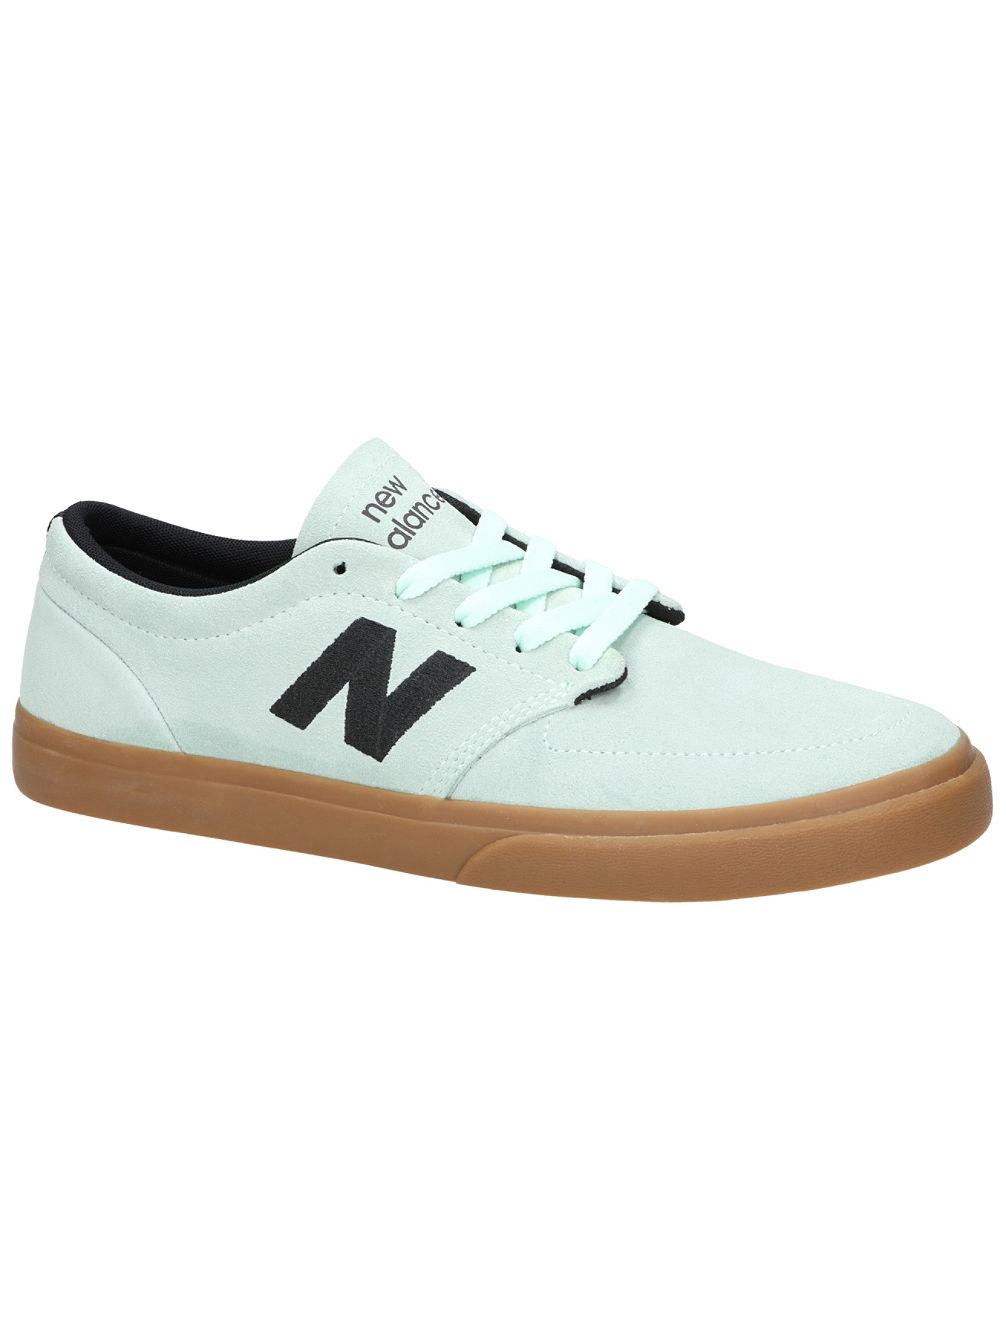 04521ff068 345 Numeric Skate Shoes